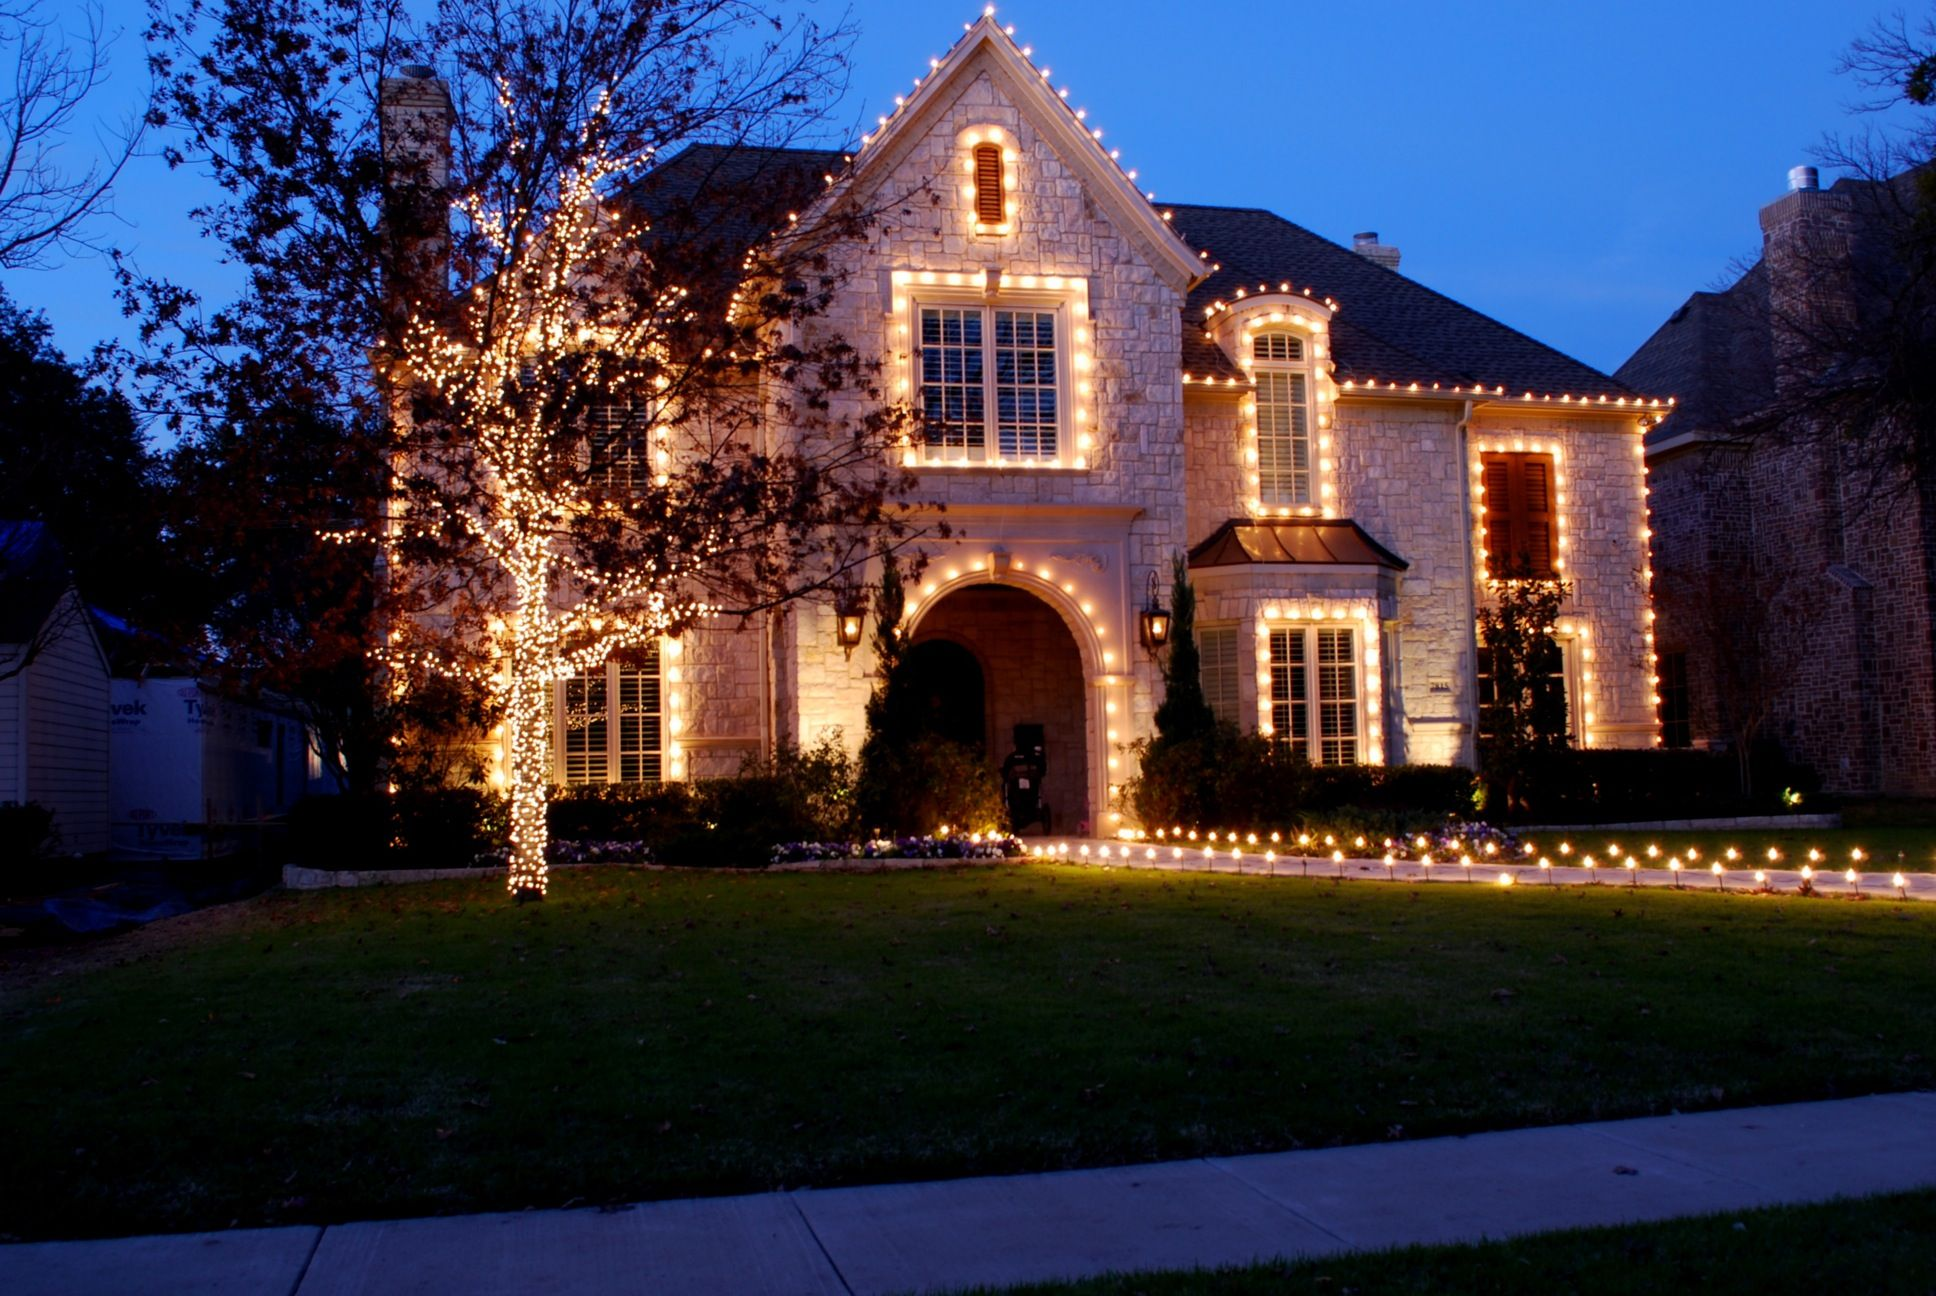 Pin By Brandi Daniels On Lighten Up Holiday Lighting Christmas